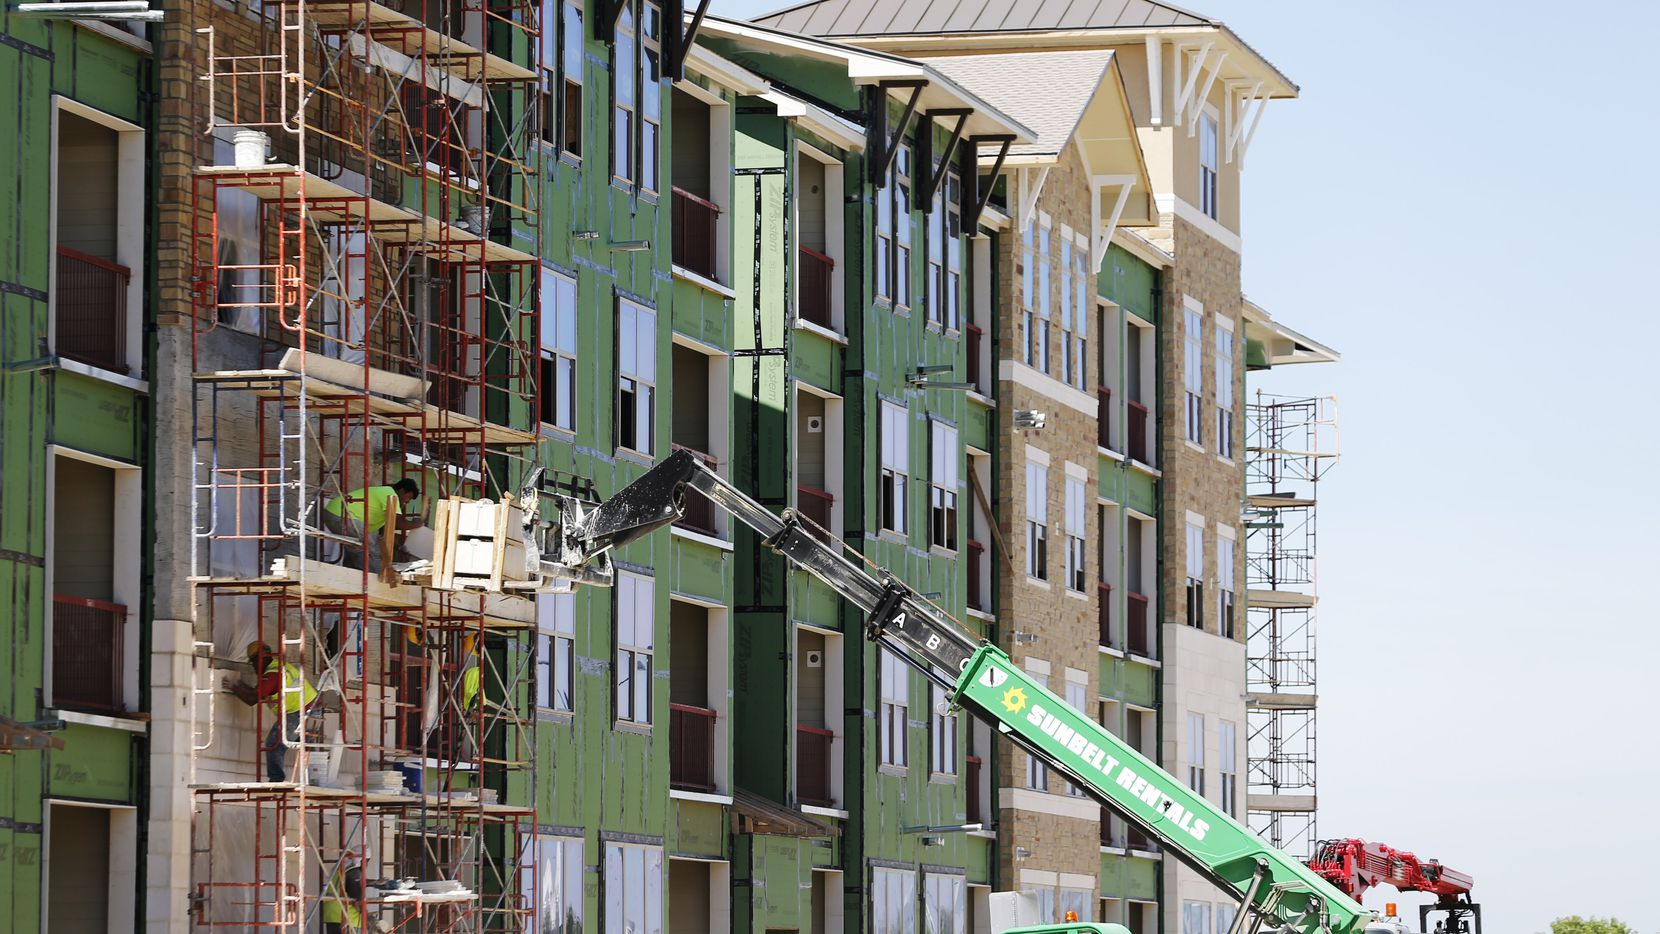 Almost $3.5 billion in construction projects were recorded in North Texas in the first two months of 2018.